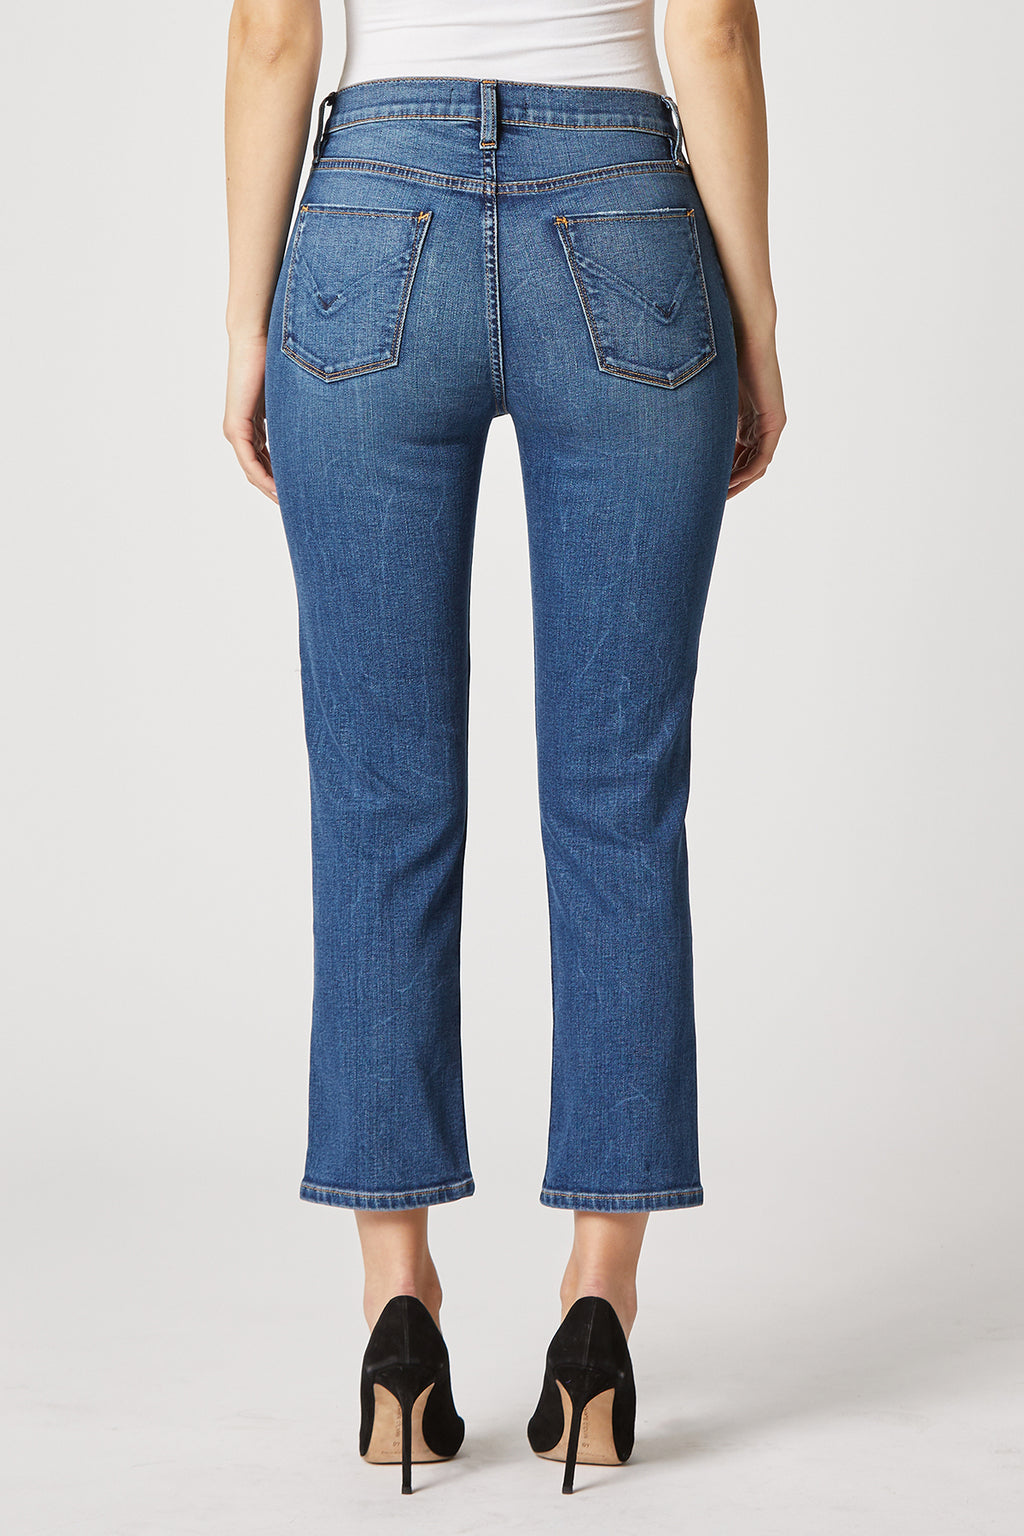 Barbara High-Rise Straight Crop Jean